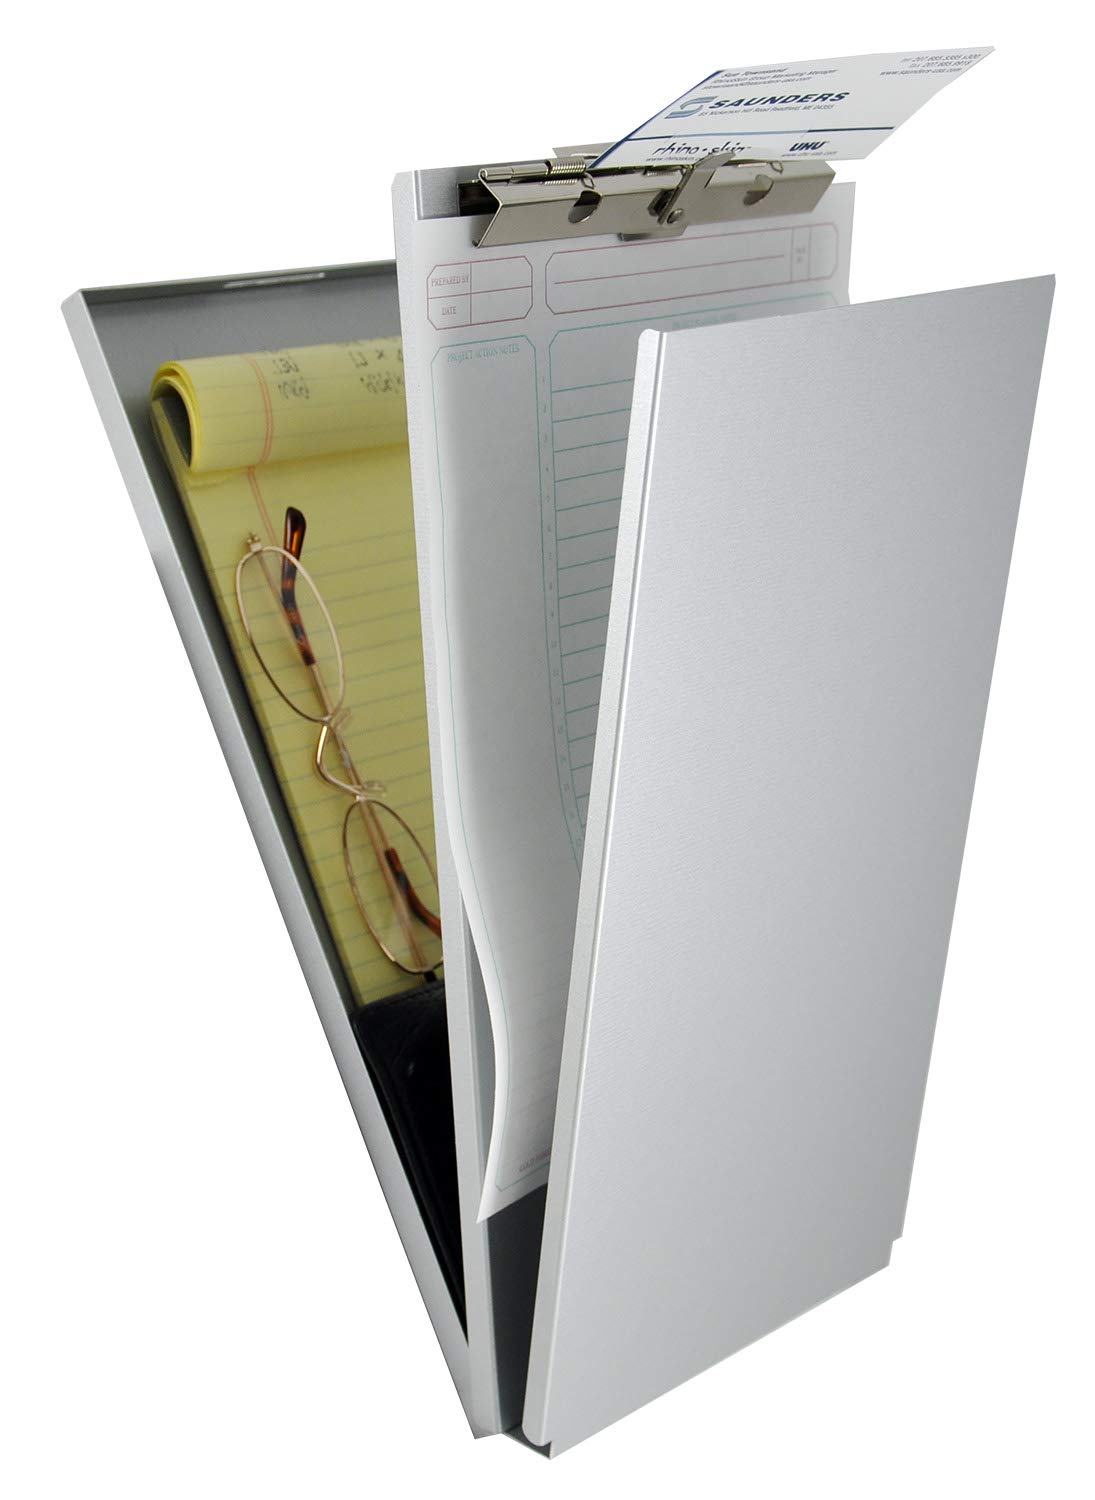 Saunders Recycled Aluminum A-Holder Form Holder, 9.5 x 12-Inches, 1 Holder (10022) by Saunders